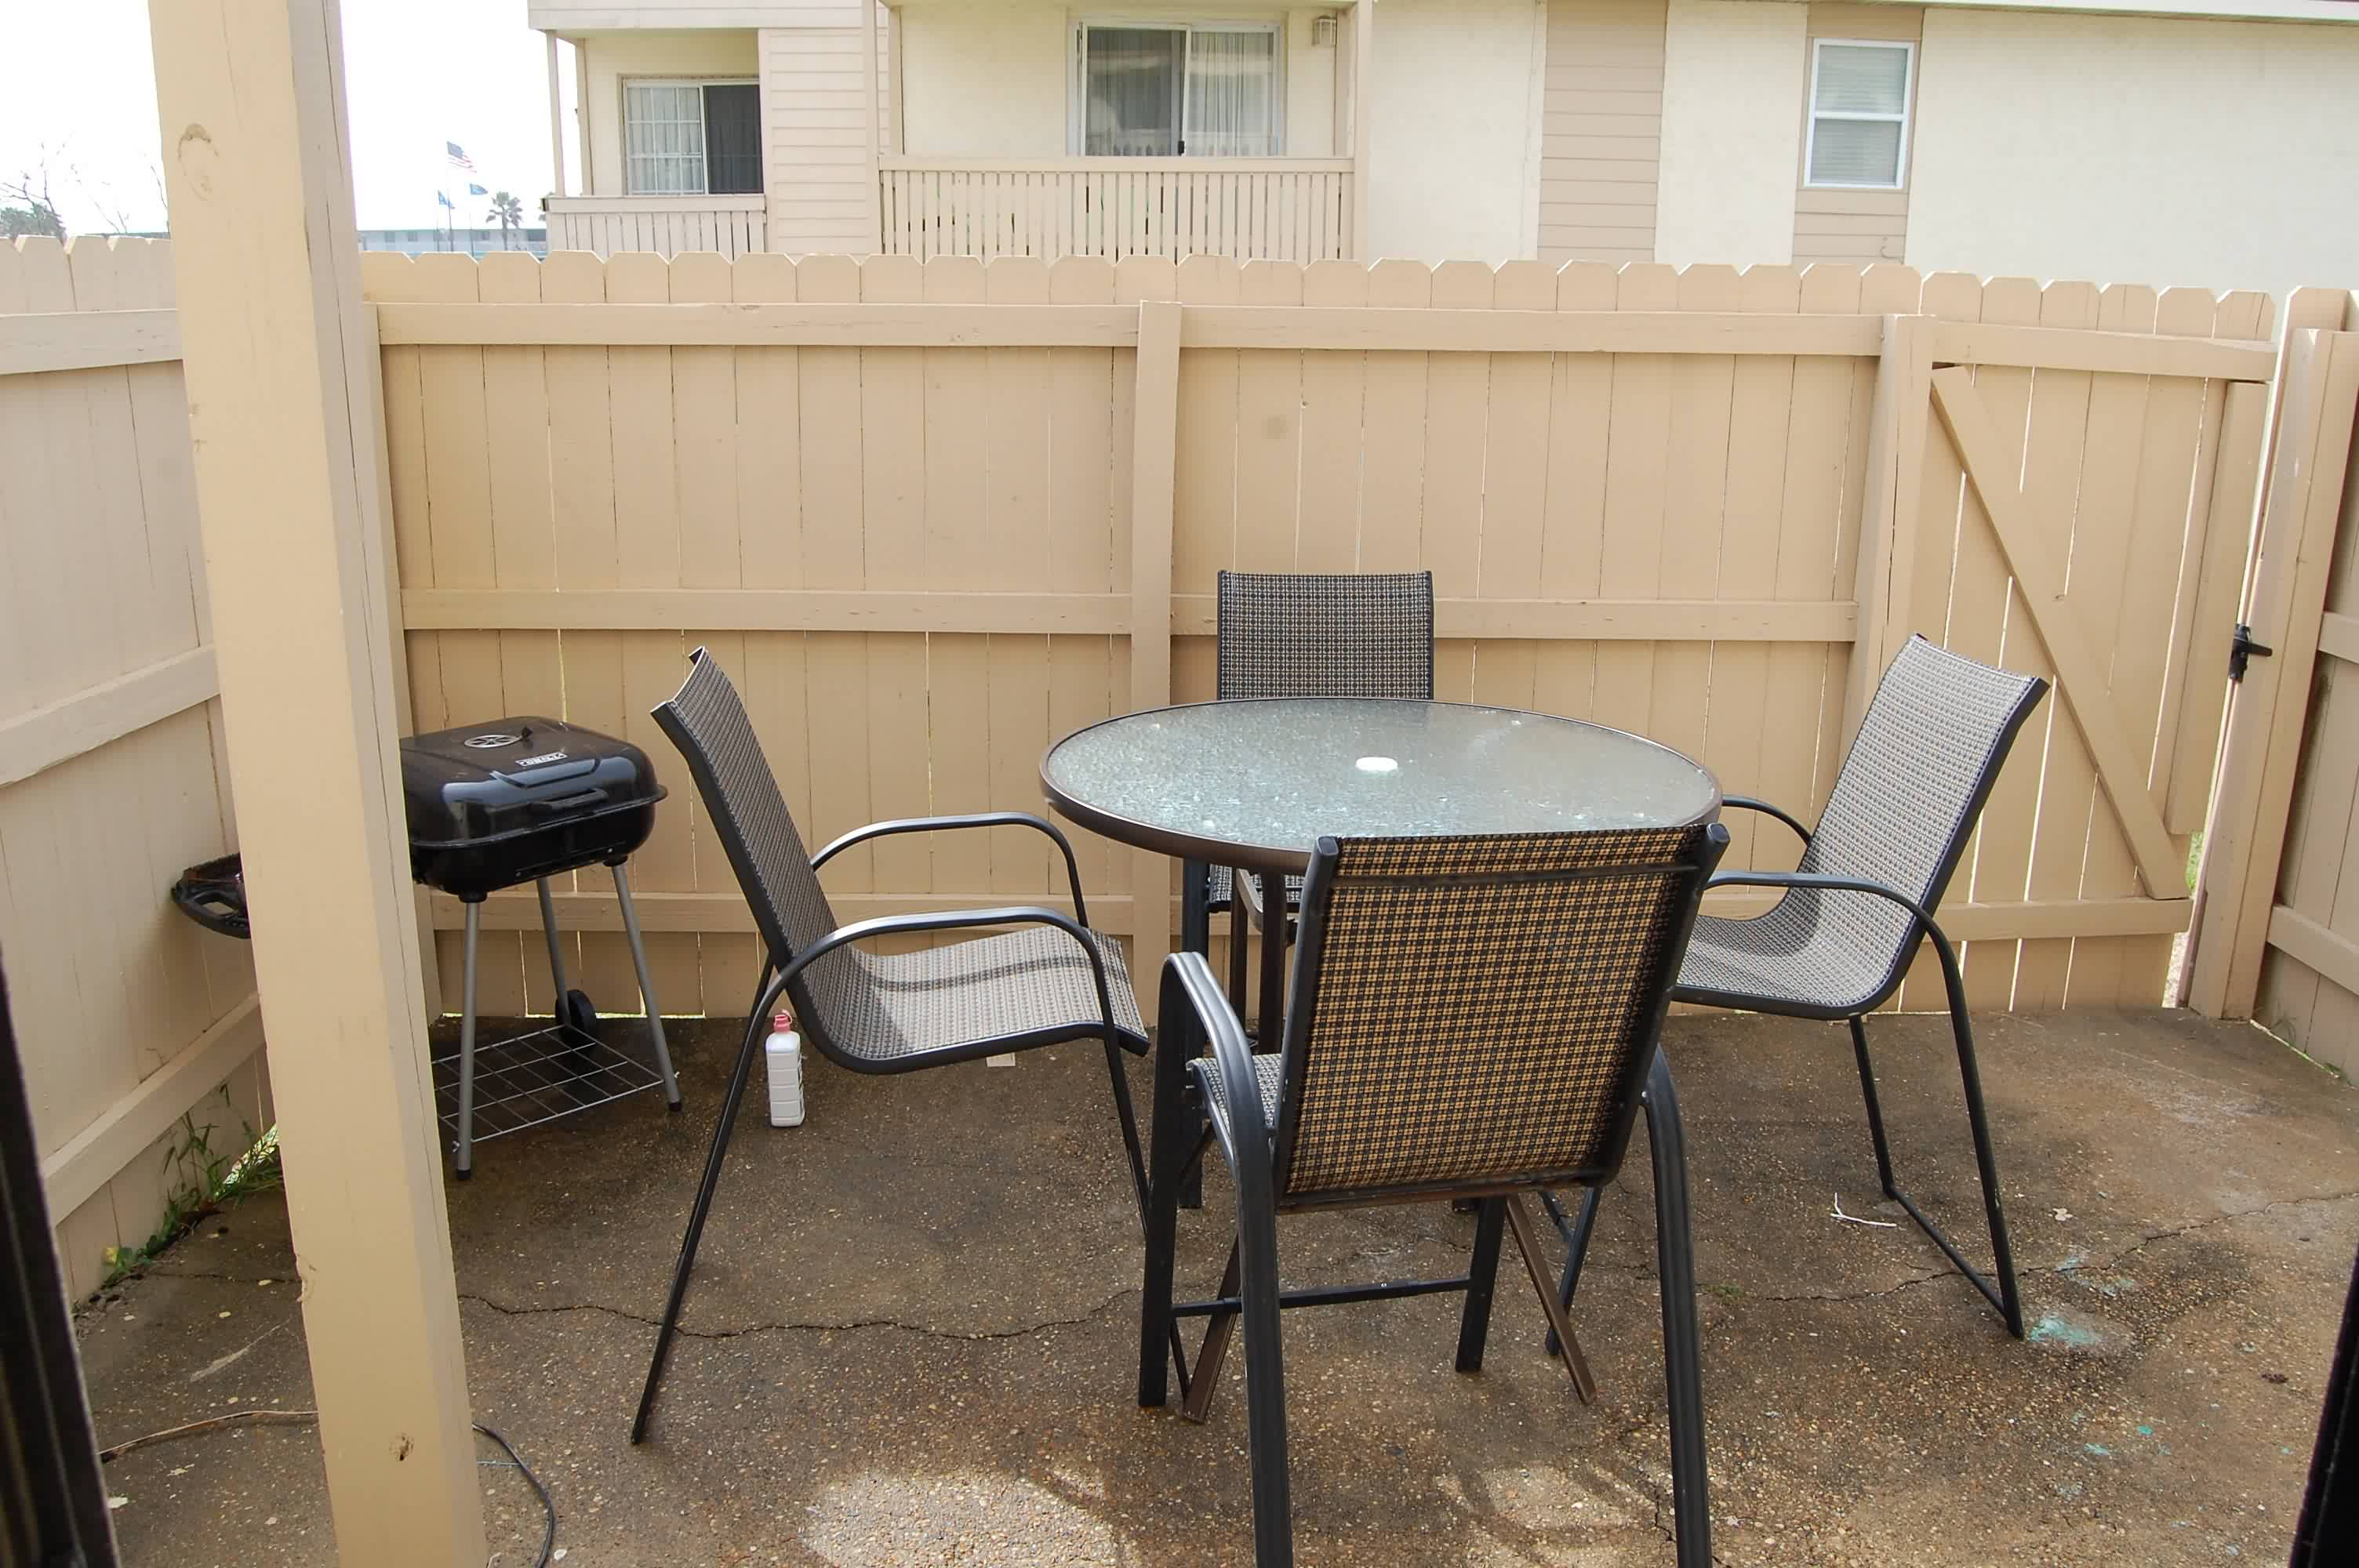 Enclosed patio with table, chairs, and grill